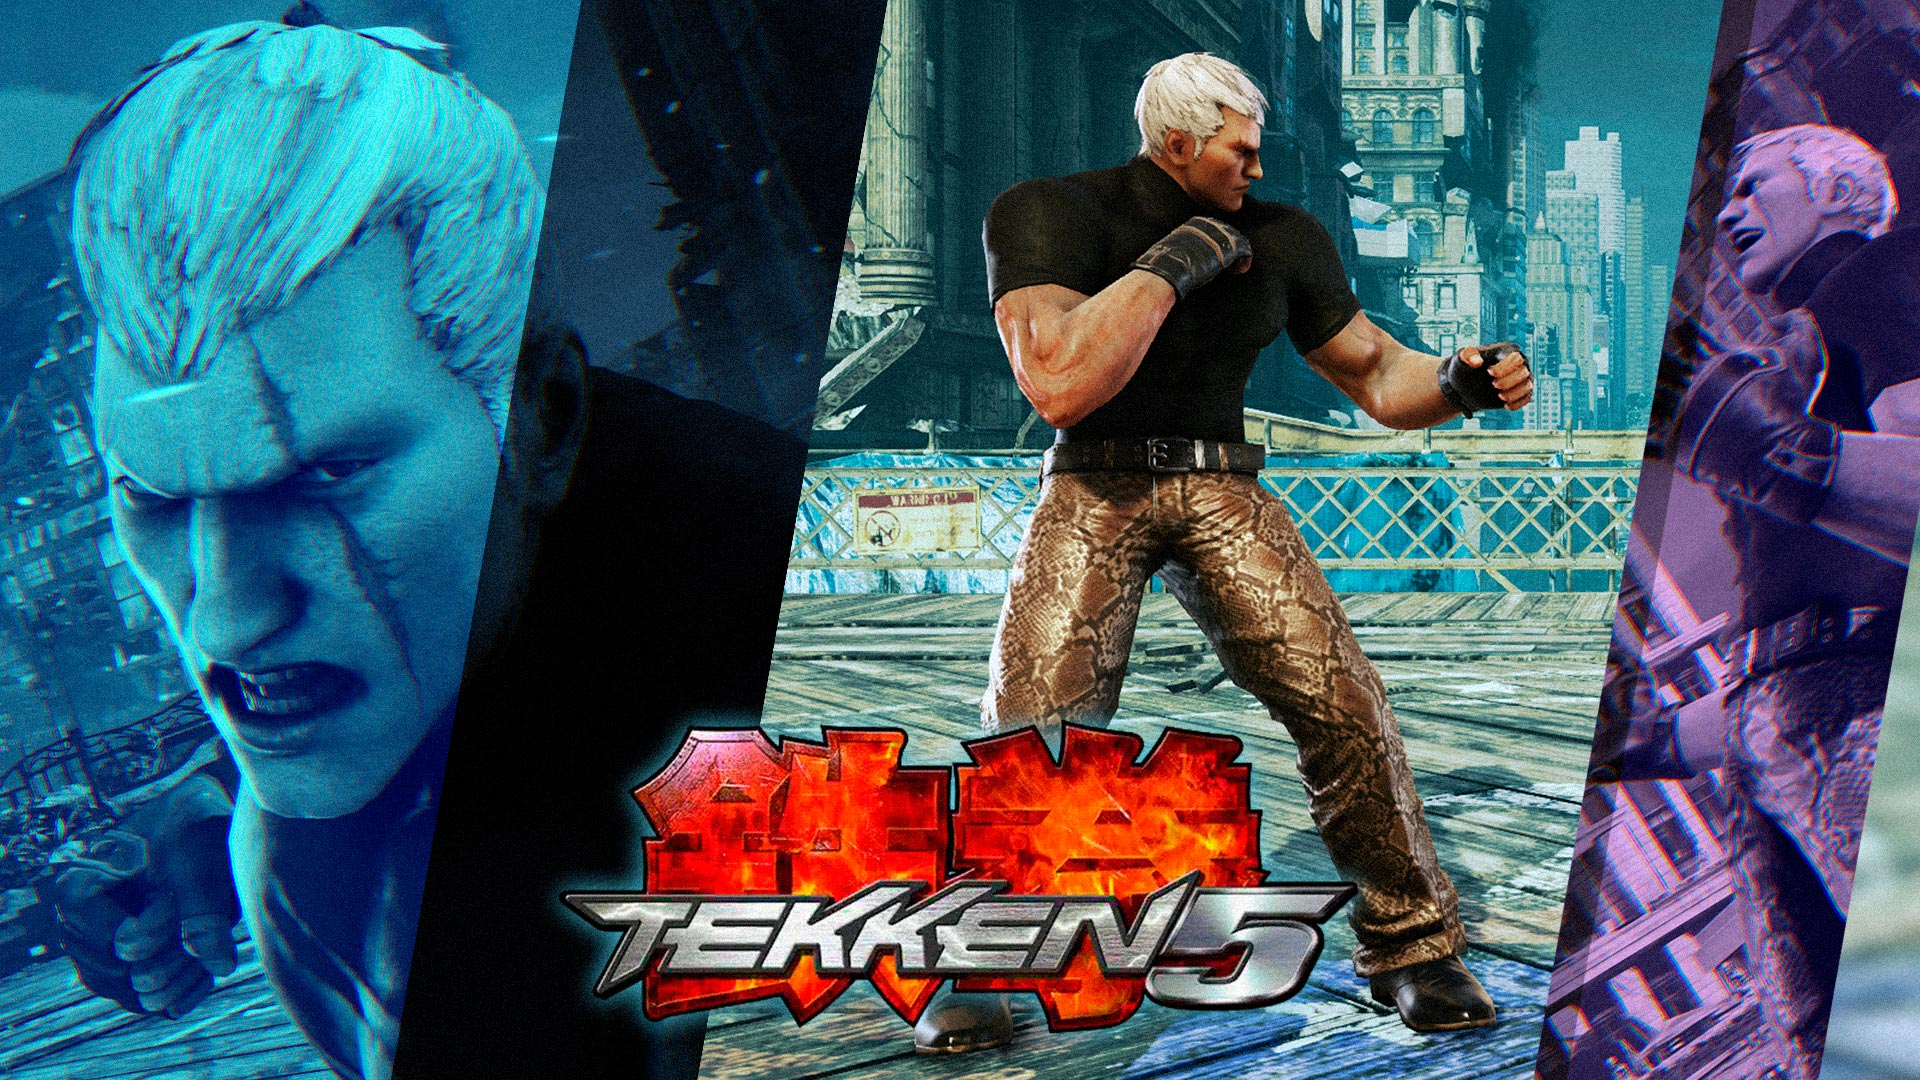 Tekken 7 PC mods add Dragon Ball Z and legacy Tekken looks to the game 2 out of 6 image gallery